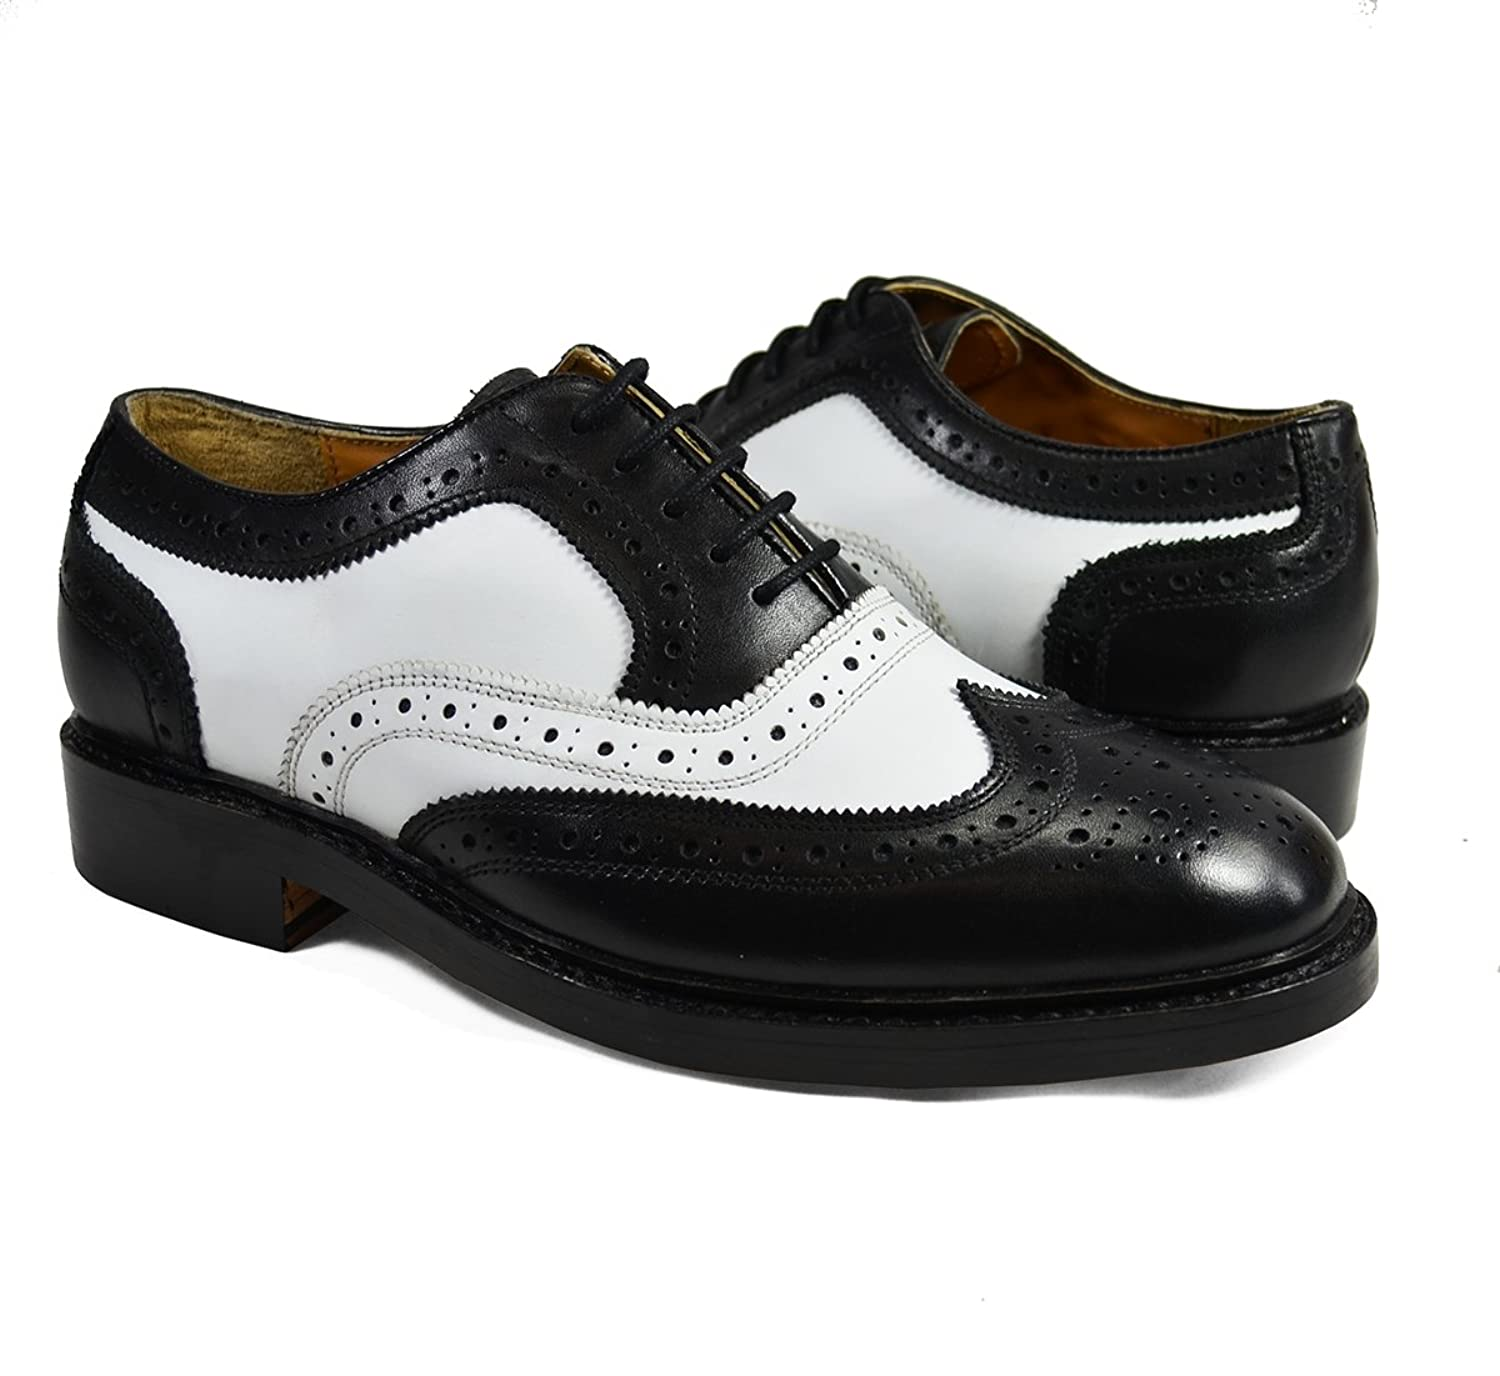 1950s Mens Shoes: Saddle Shoes, Boots, Greaser, Rockabilly Black and White Wing Tip Spectators by Paul Malone . 100% Leather  AT vintagedancer.com